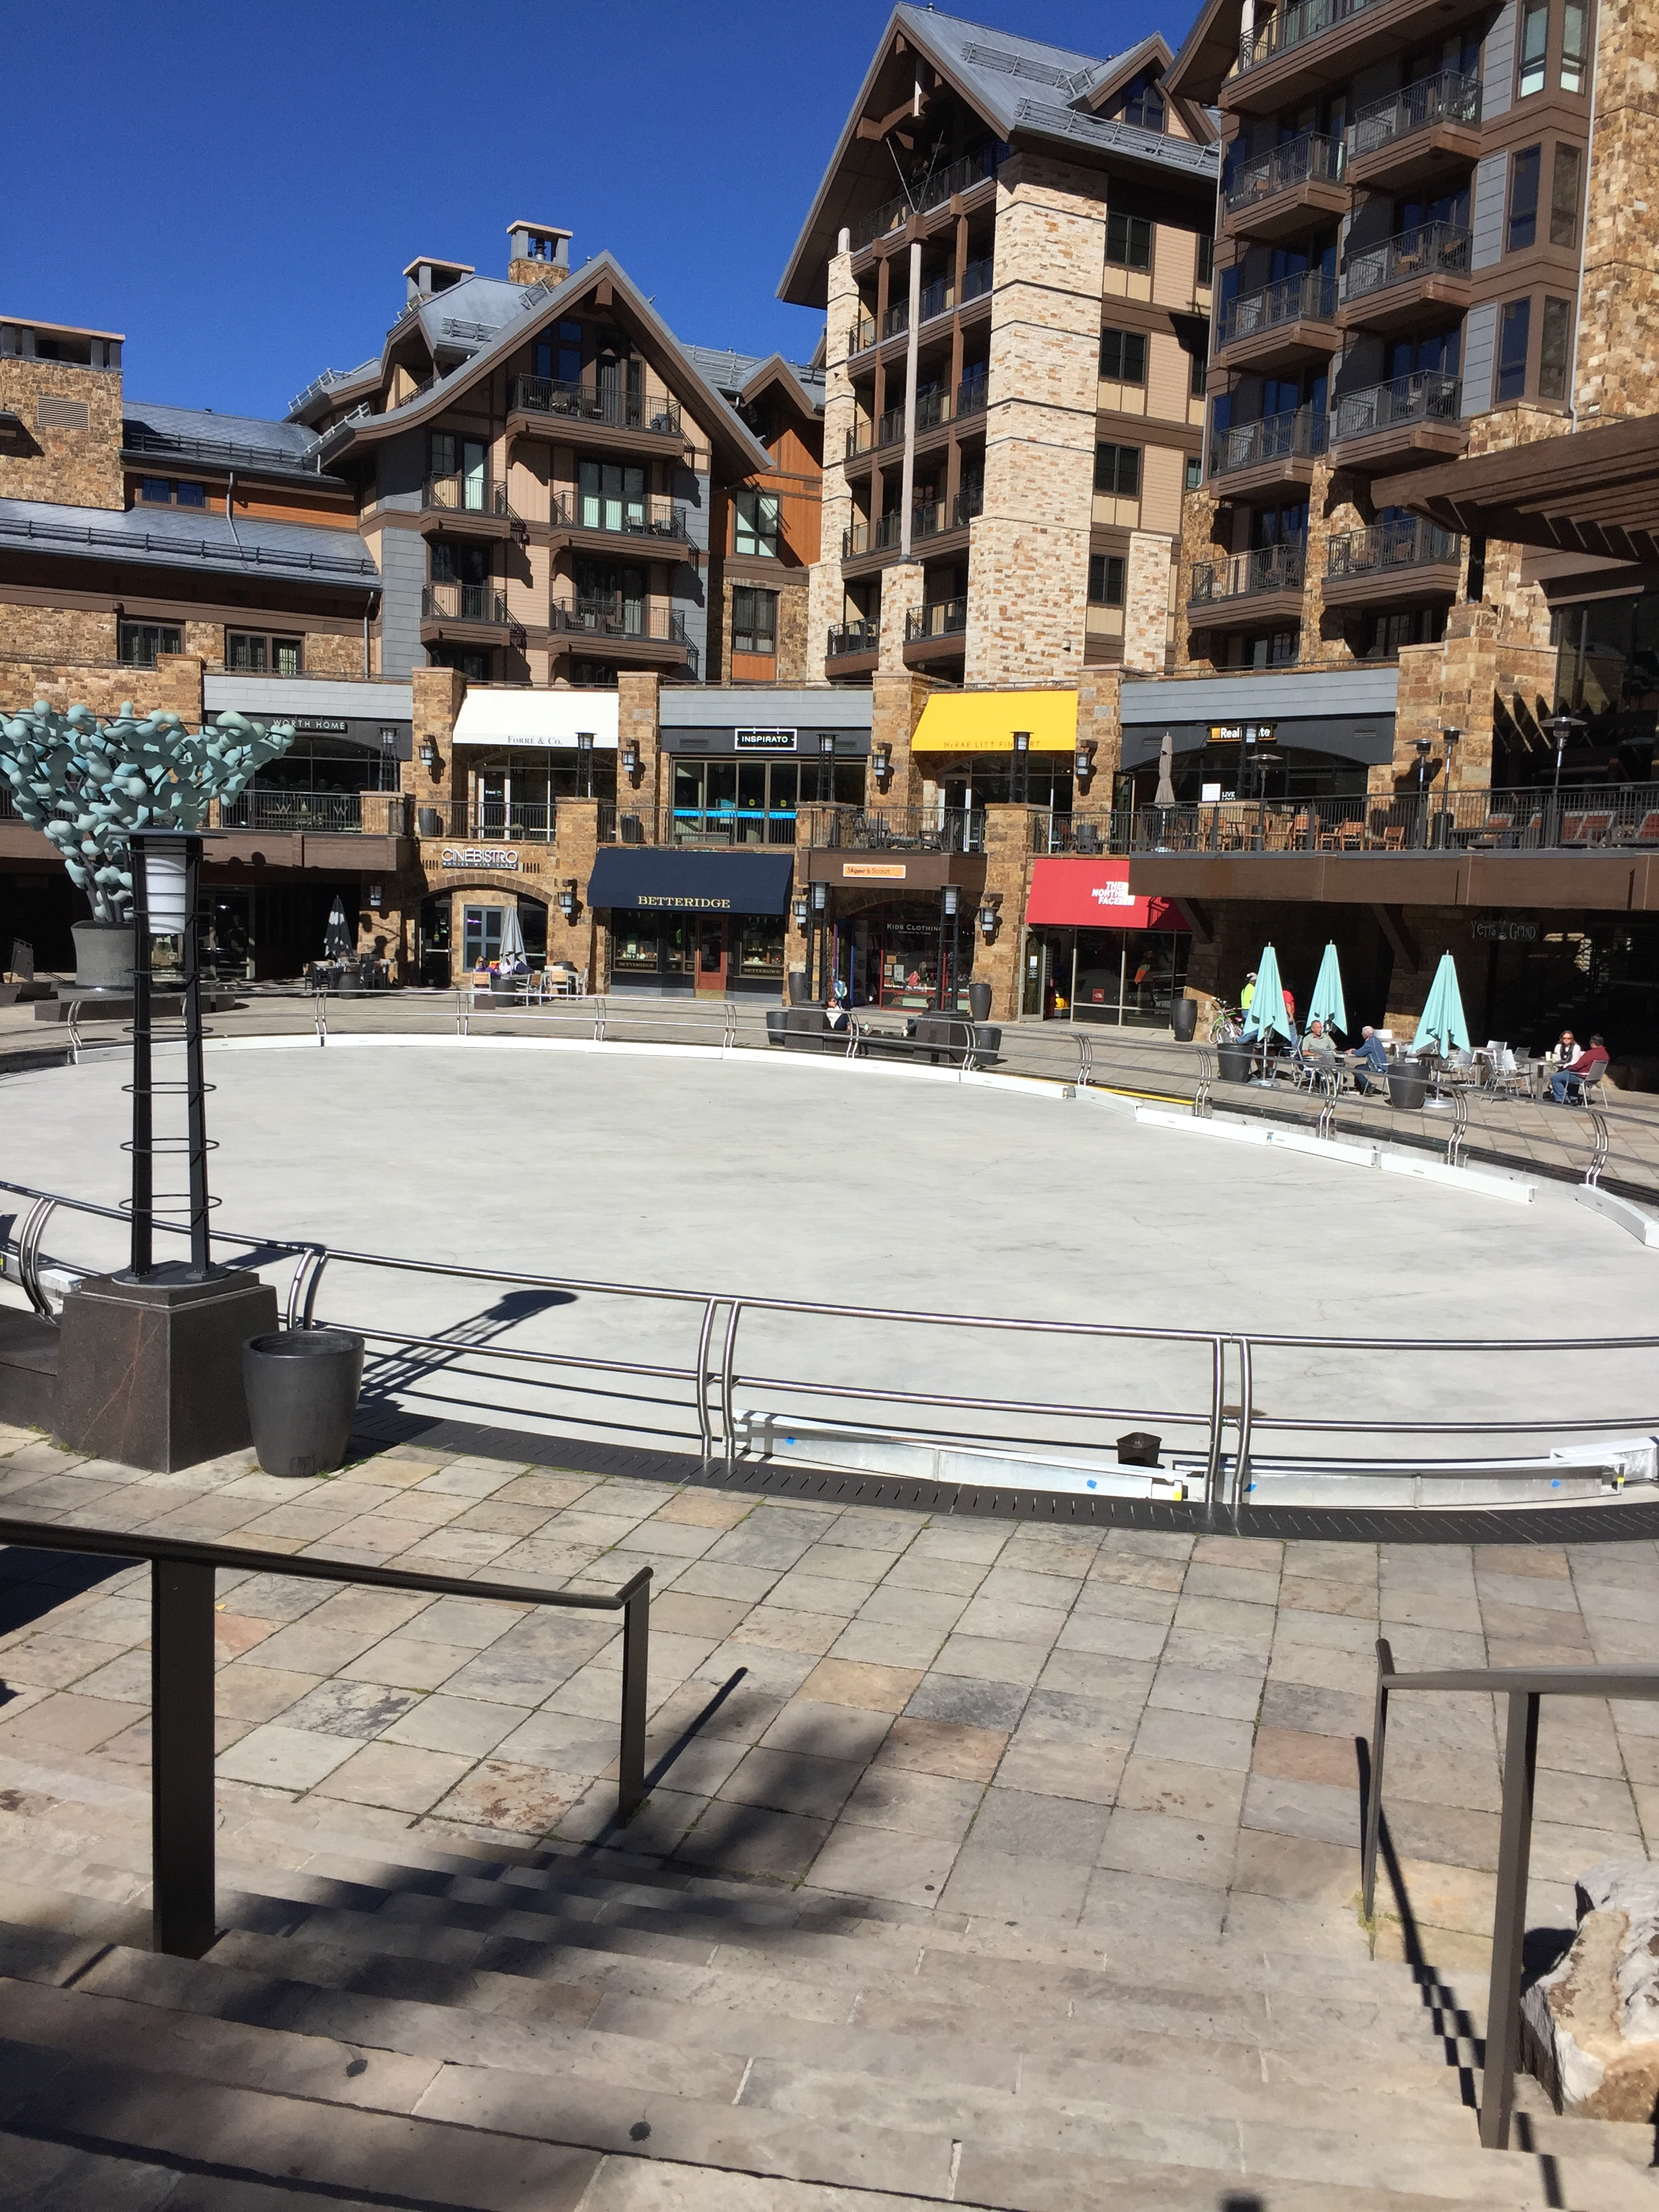 (Changing over the grassy play area to the ice skating rink!)